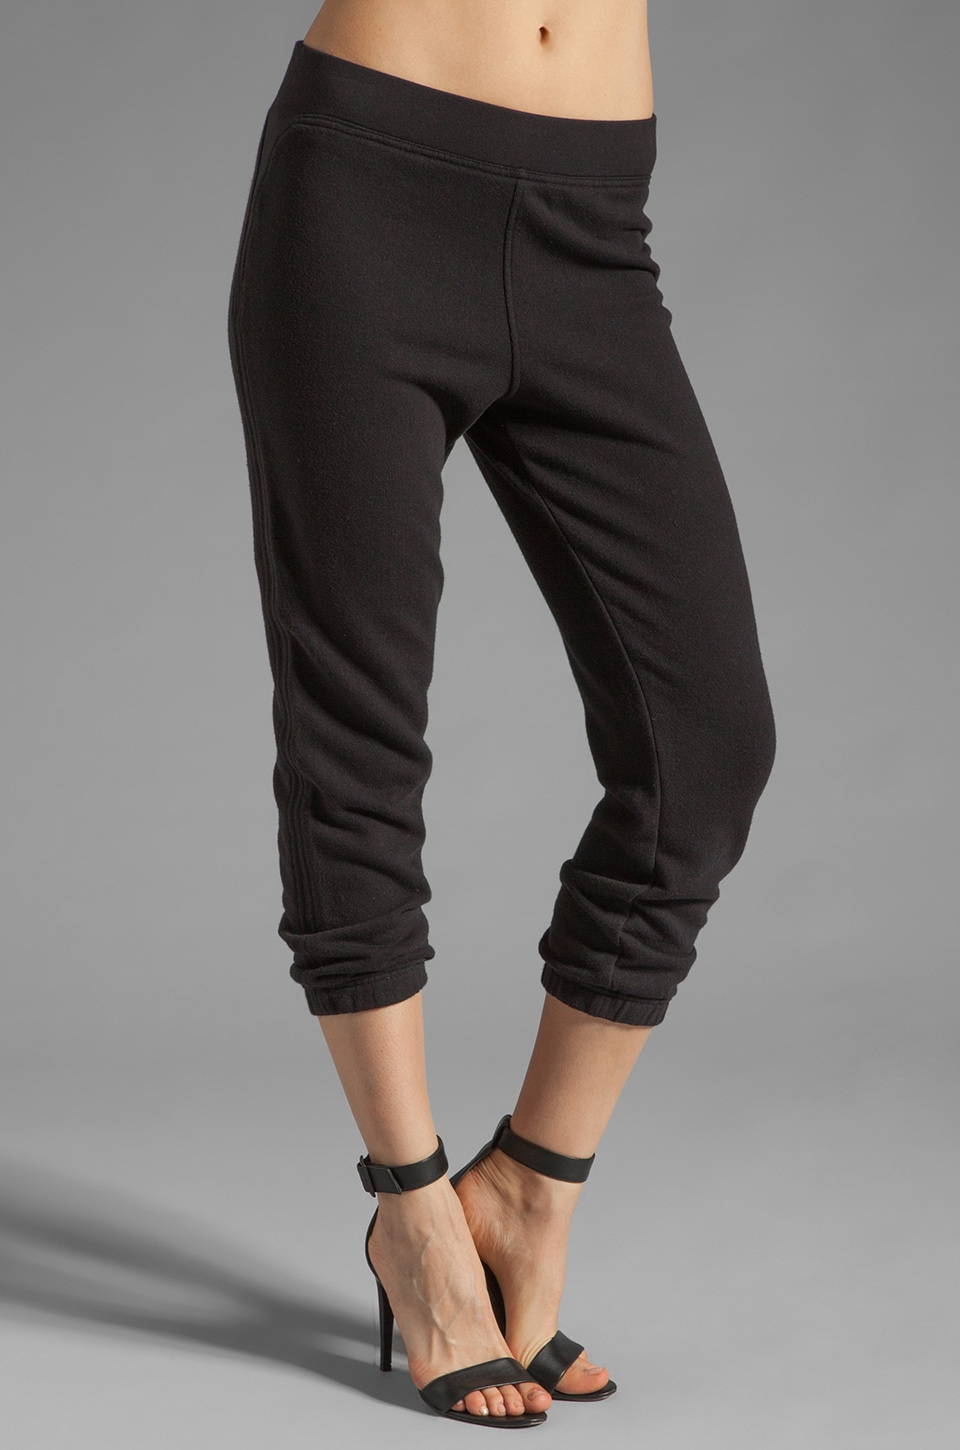 T by Alexander Wang Nep French Terry Sweatpants in Black